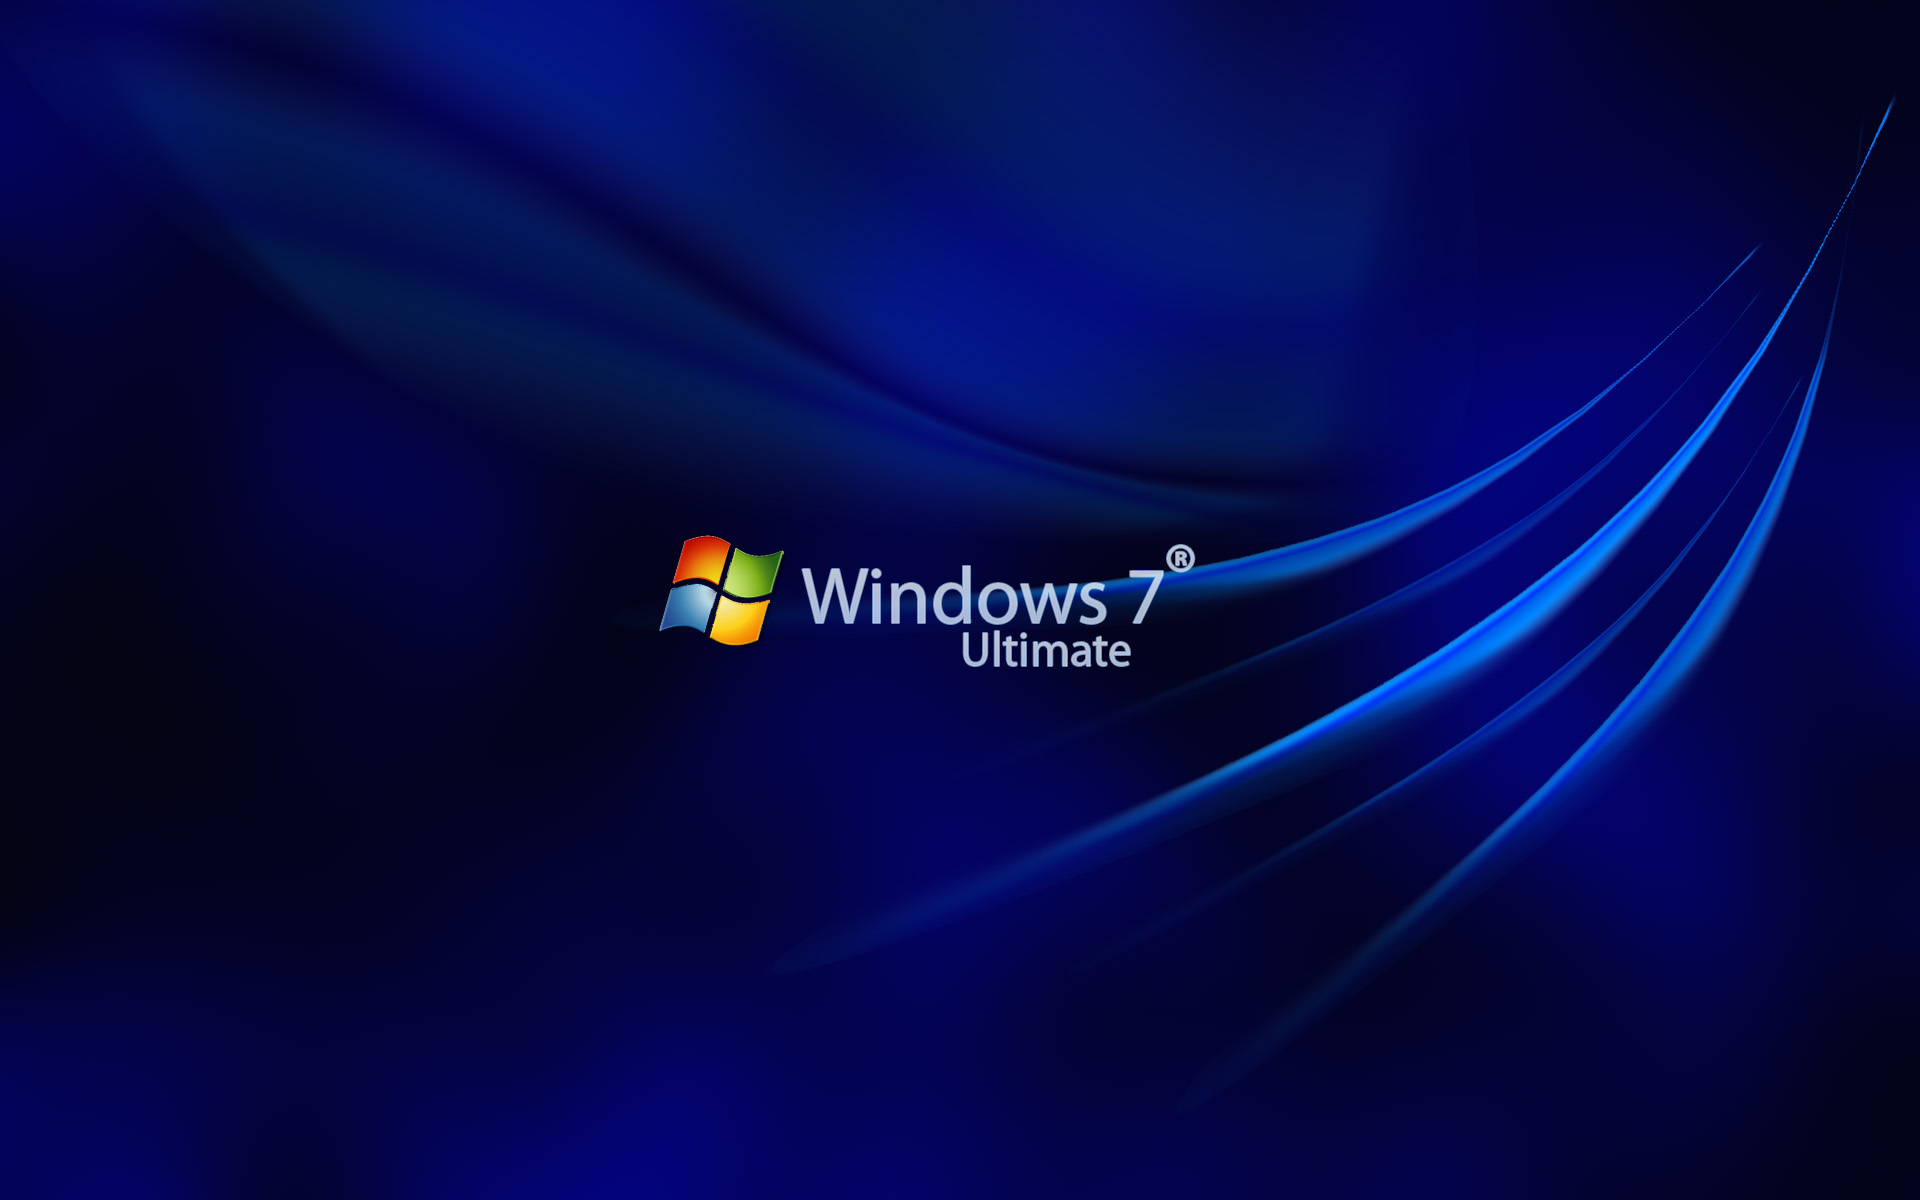 Windows ultimate screensaver hd with resolution xpx Windows 7 Ultimate 1920x1200